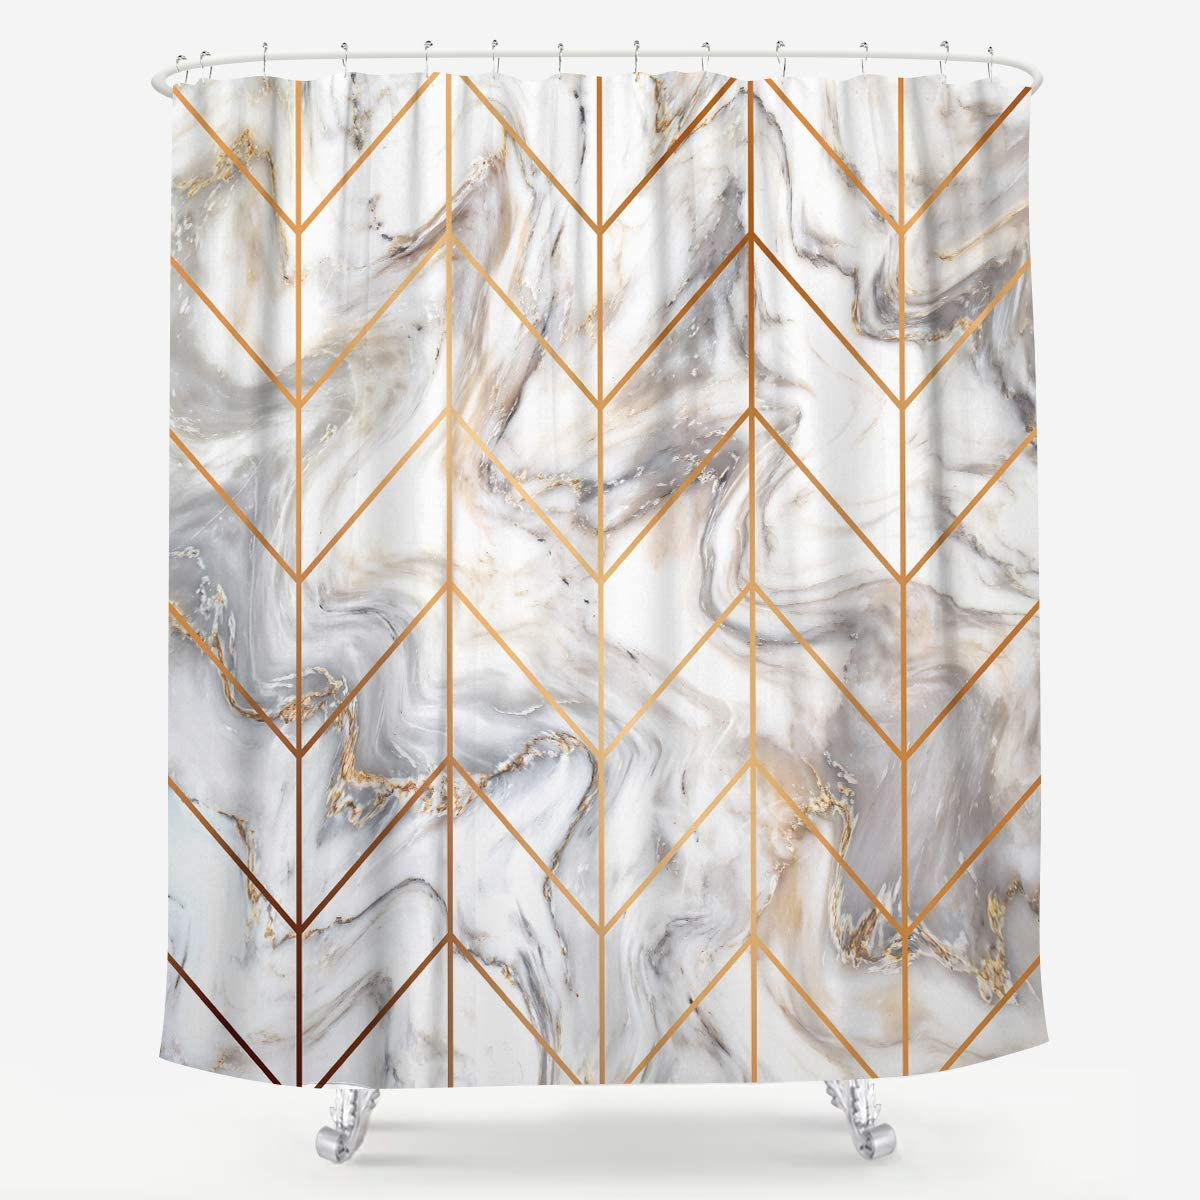 Abstract Golden Geometric Pattern Fabric Shower Curtain Set for Bathroom Decor